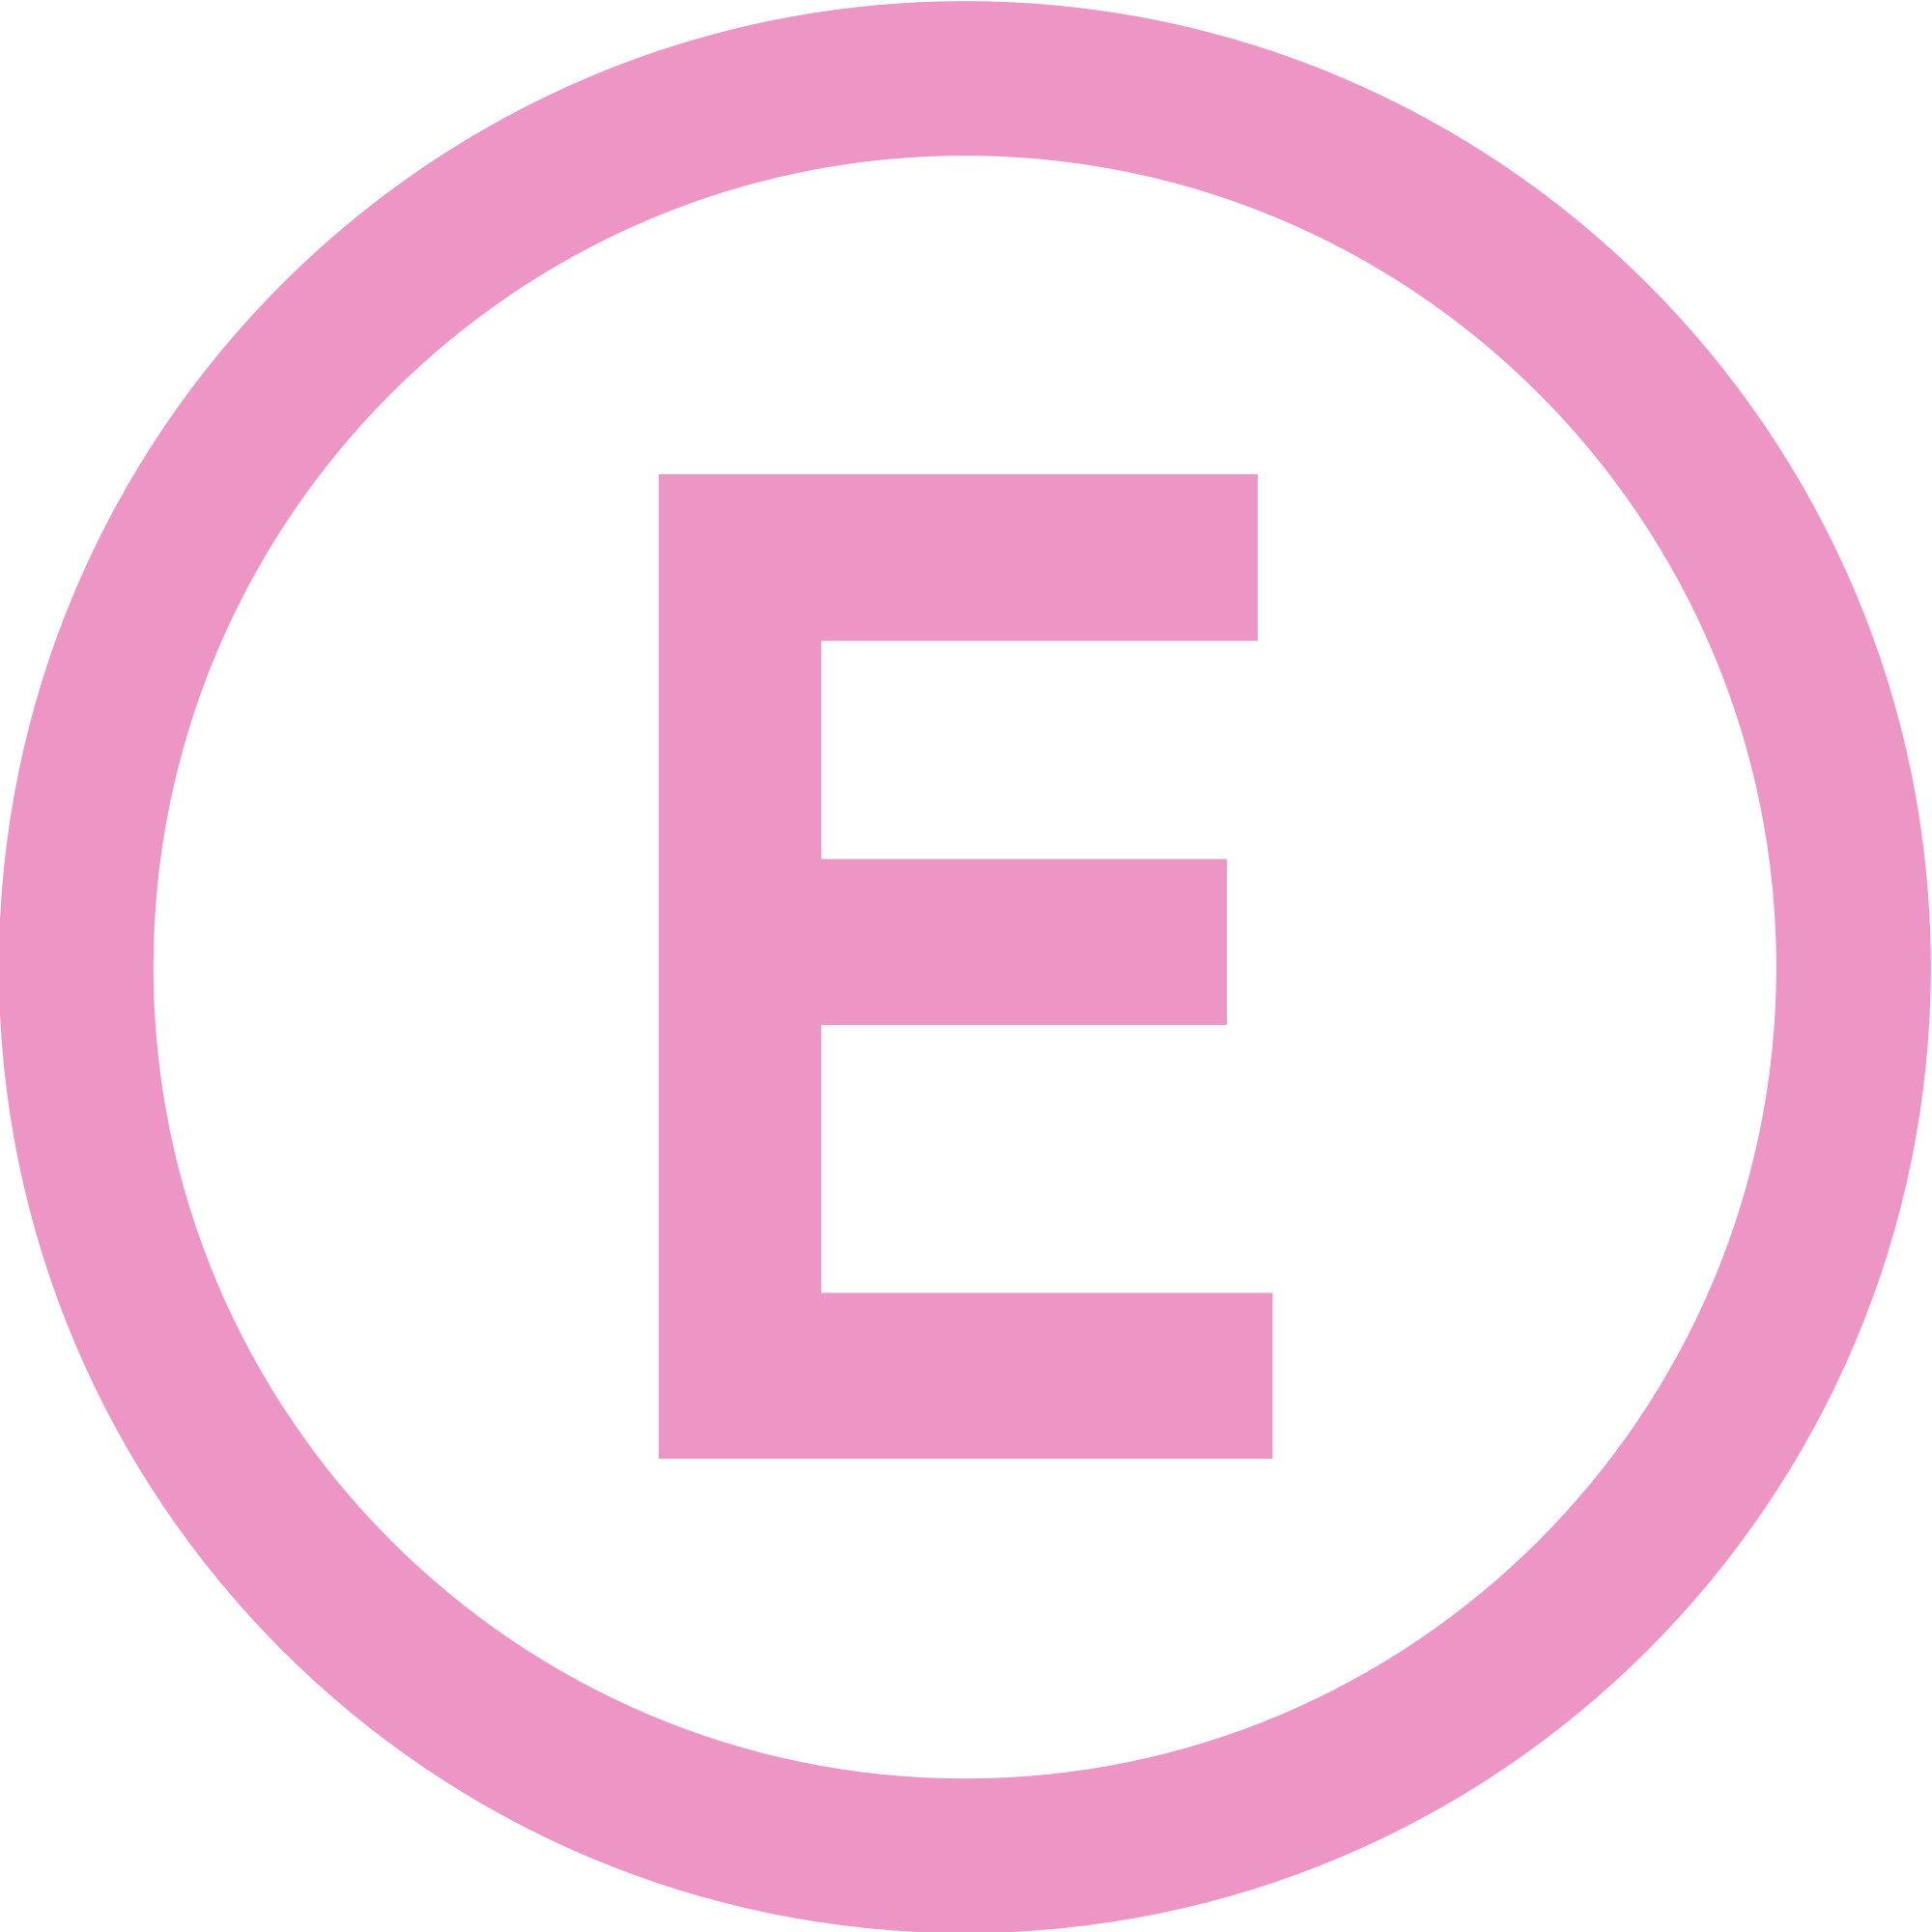 e logo png - photo #4